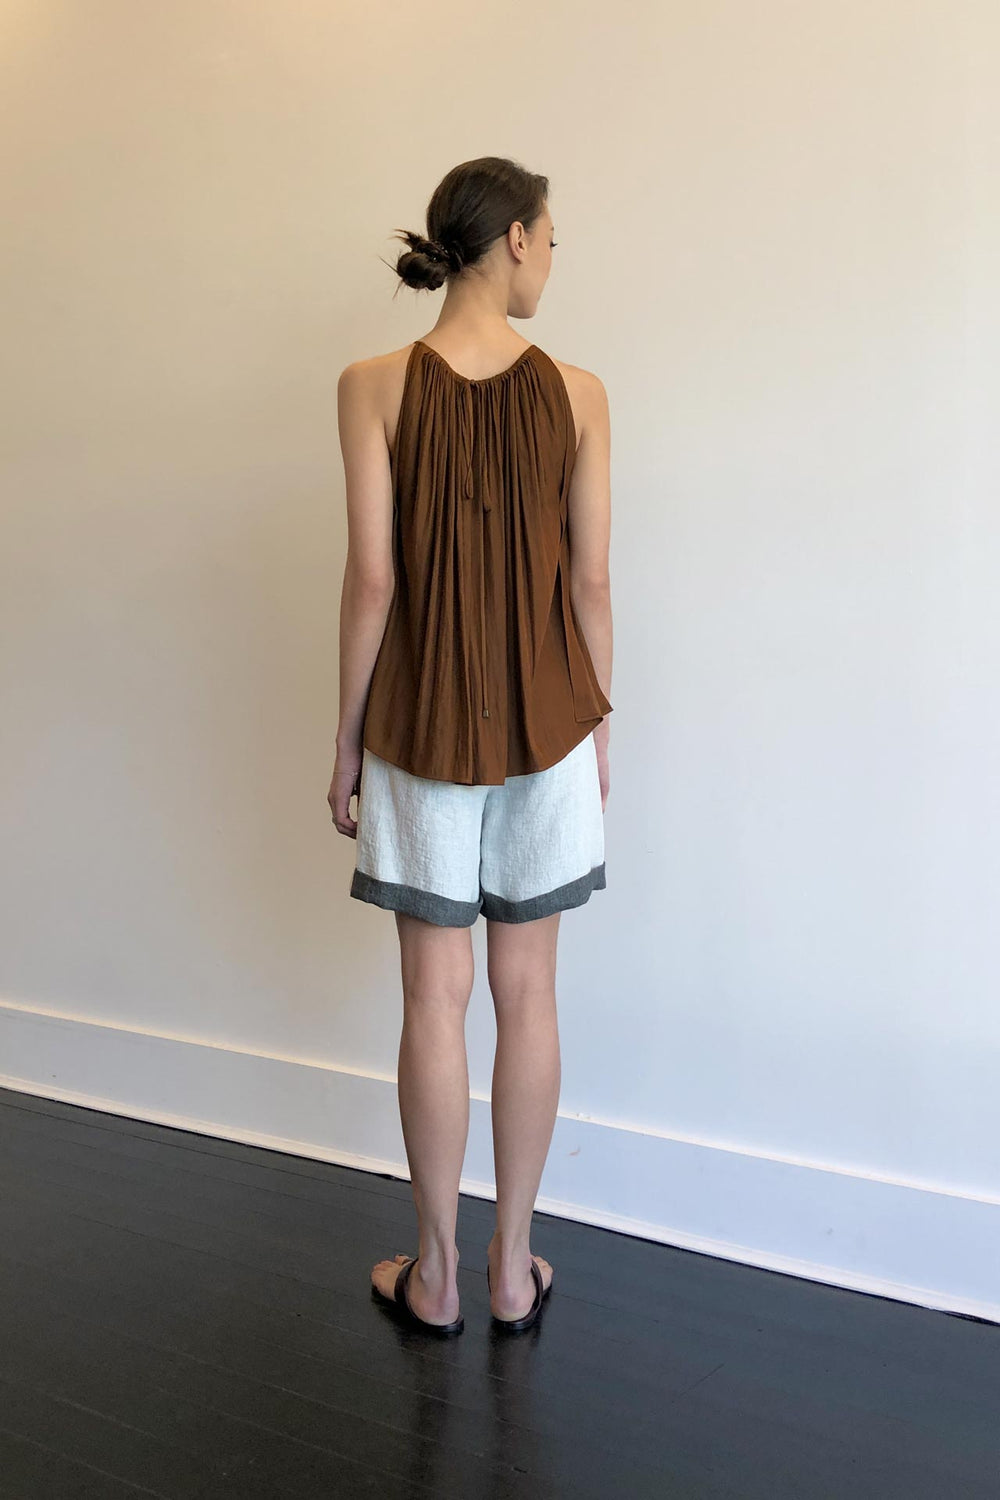 Fashion Designer CARL KAPP collection | Mila Onesize Fits All cocktail Top Brown | Sydney Australia